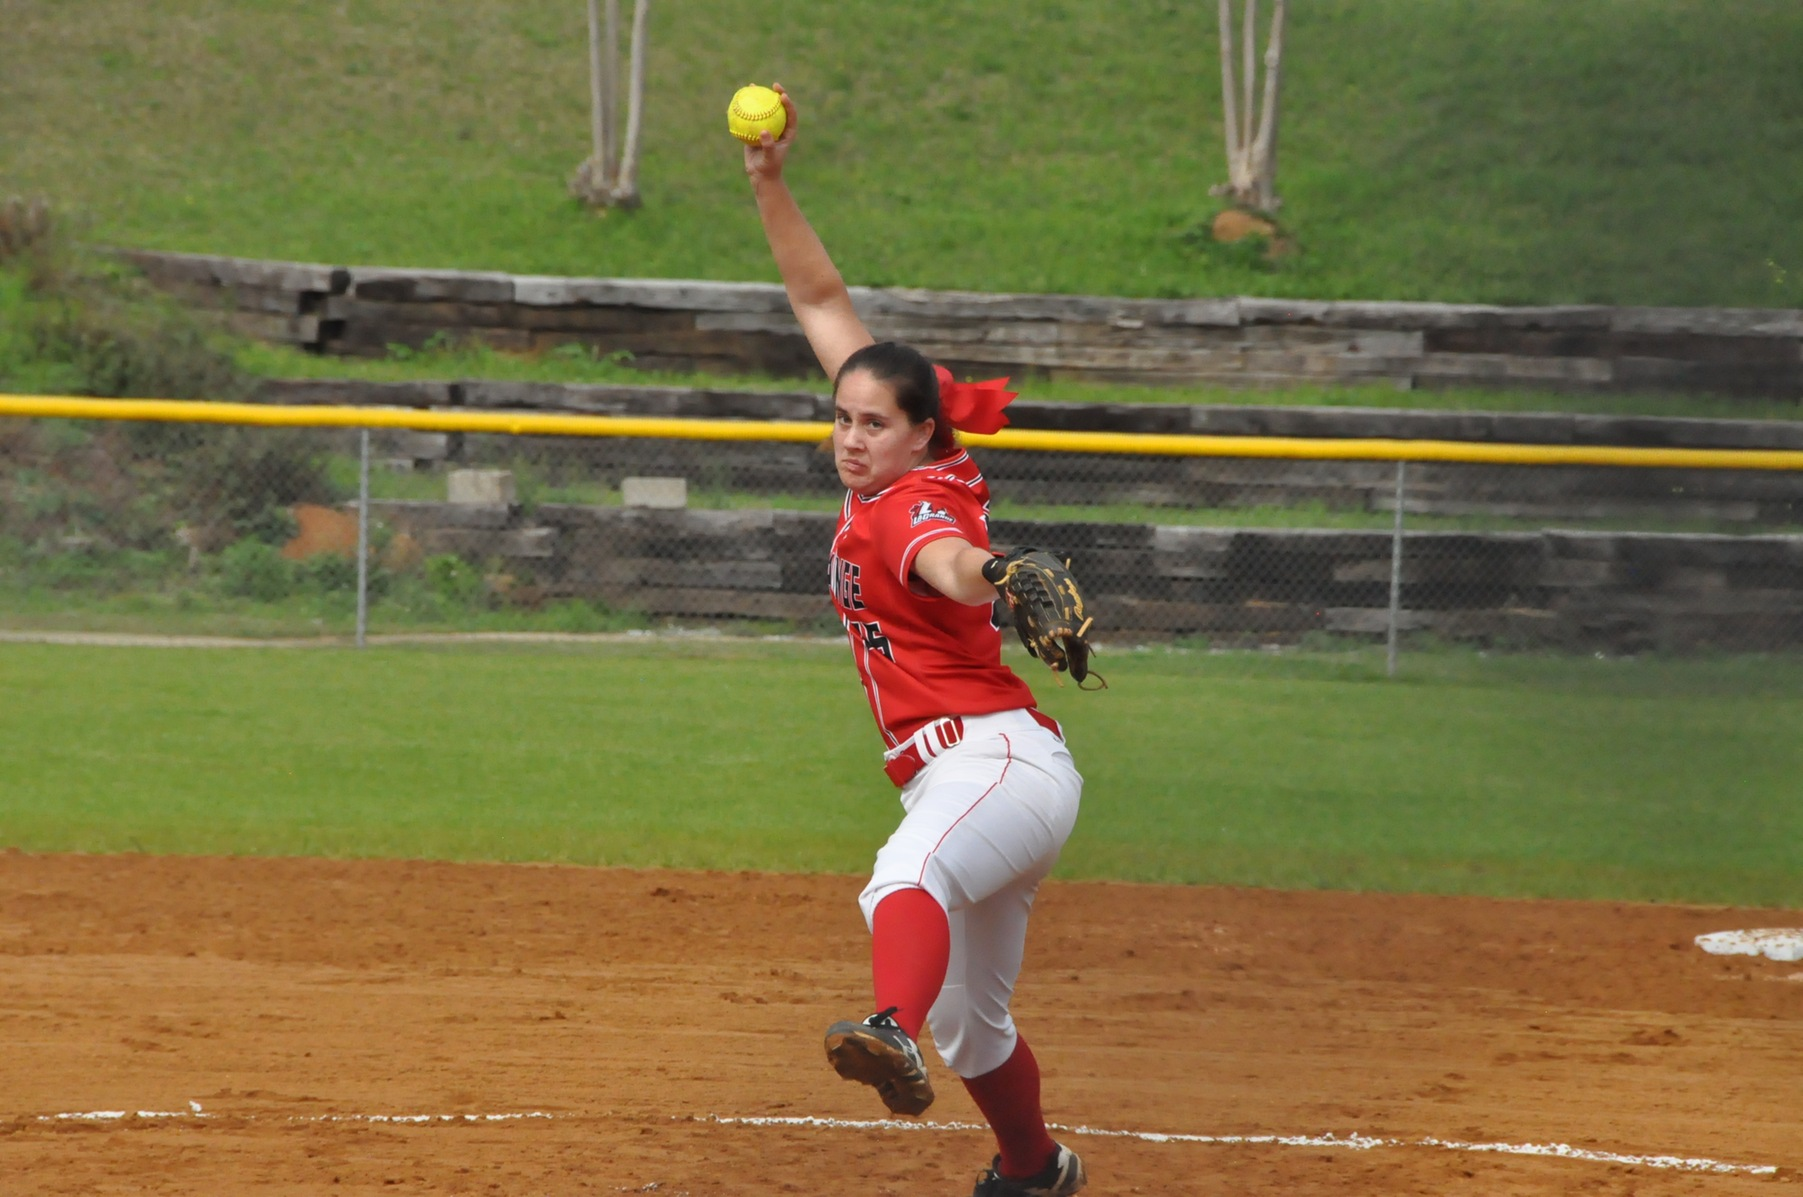 Softball: Judson takes two from Panthers in non-conference doubleheader